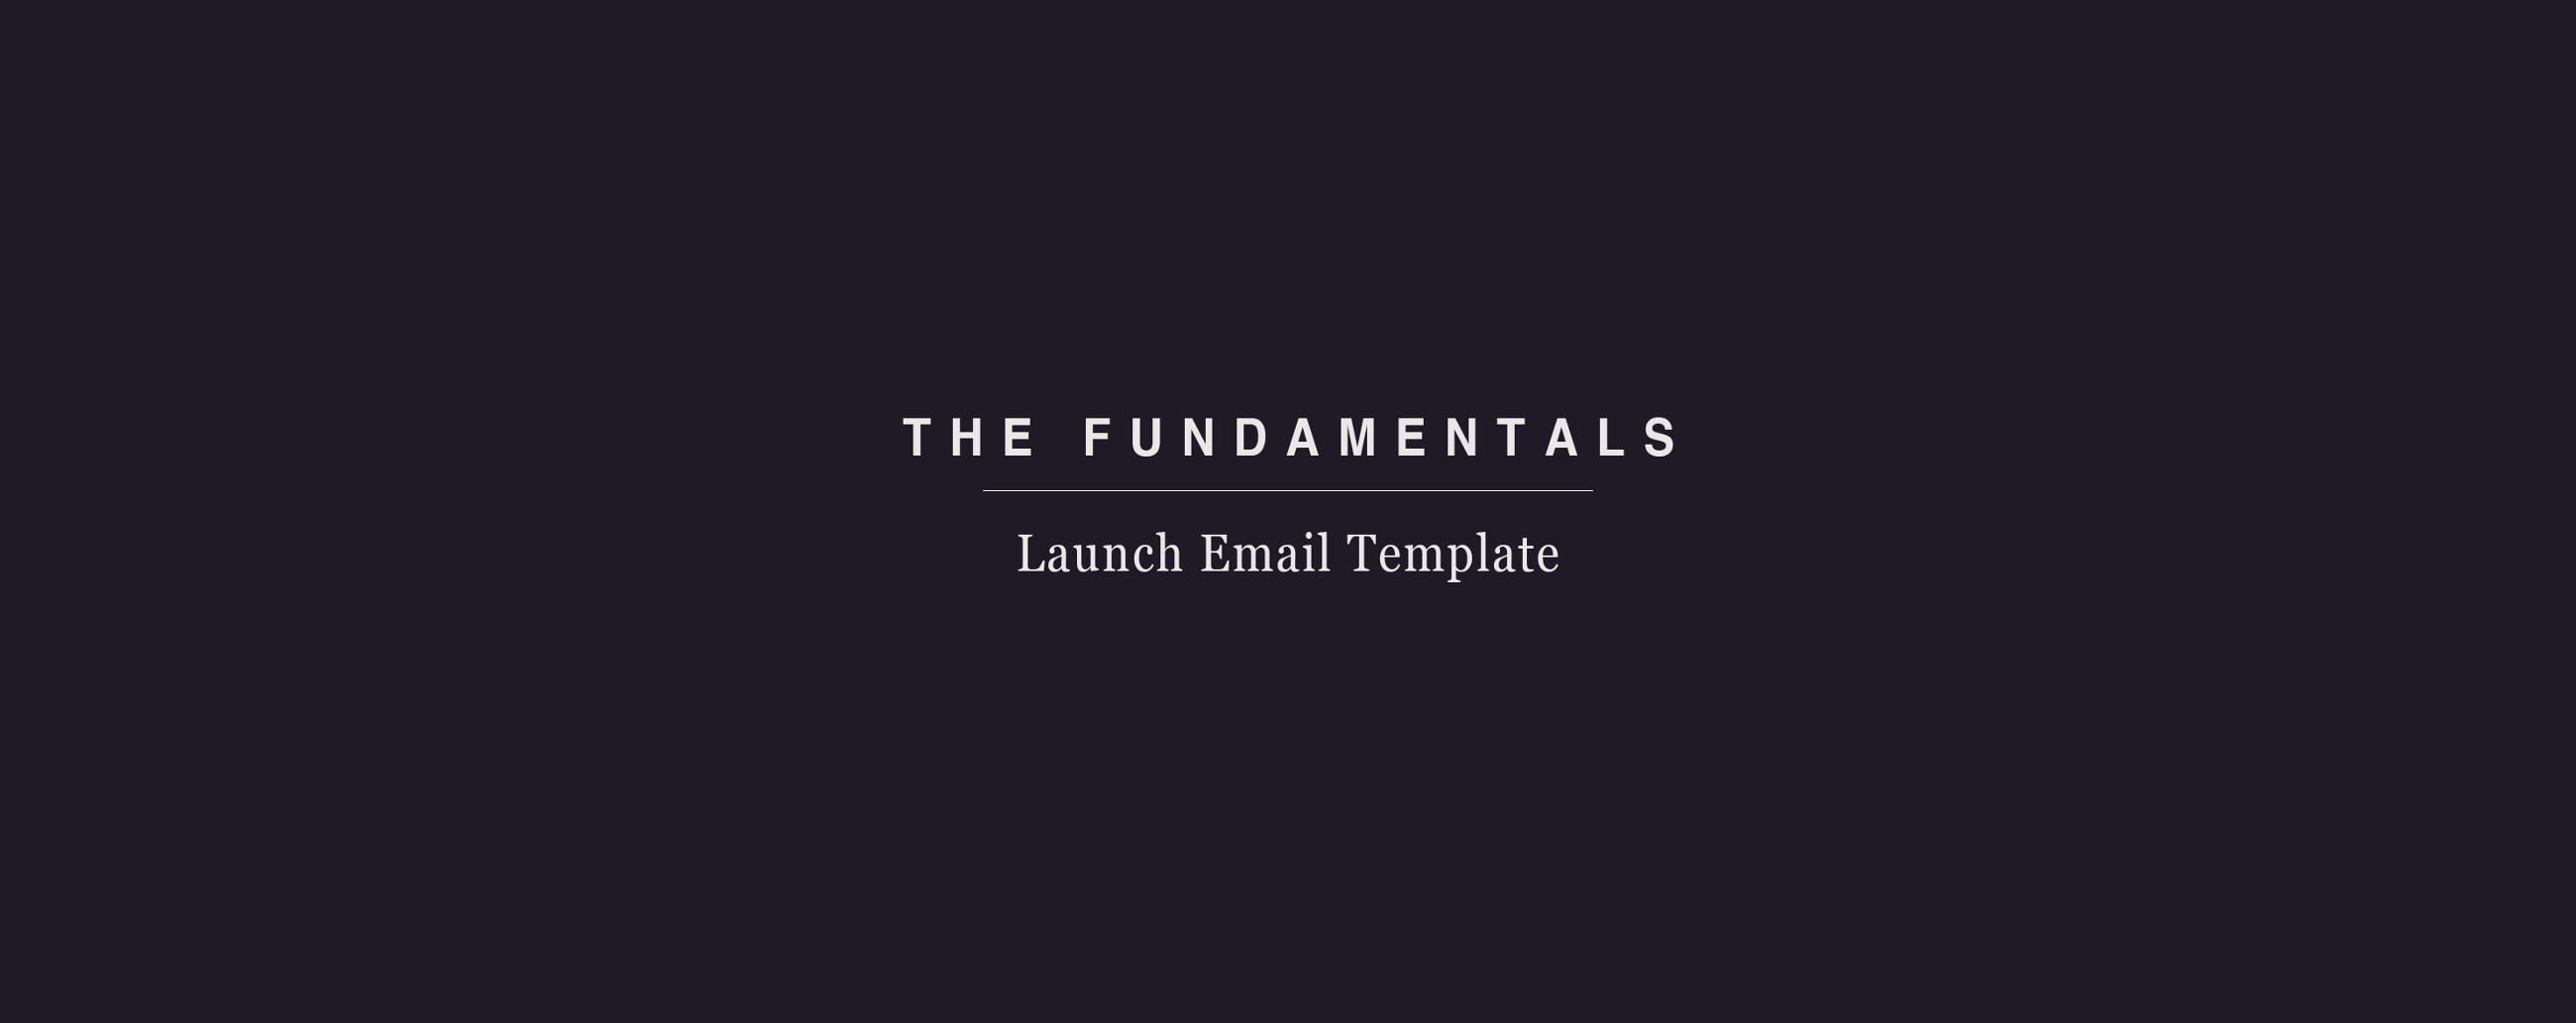 Product Launch Email Template The Fundamentals Medium